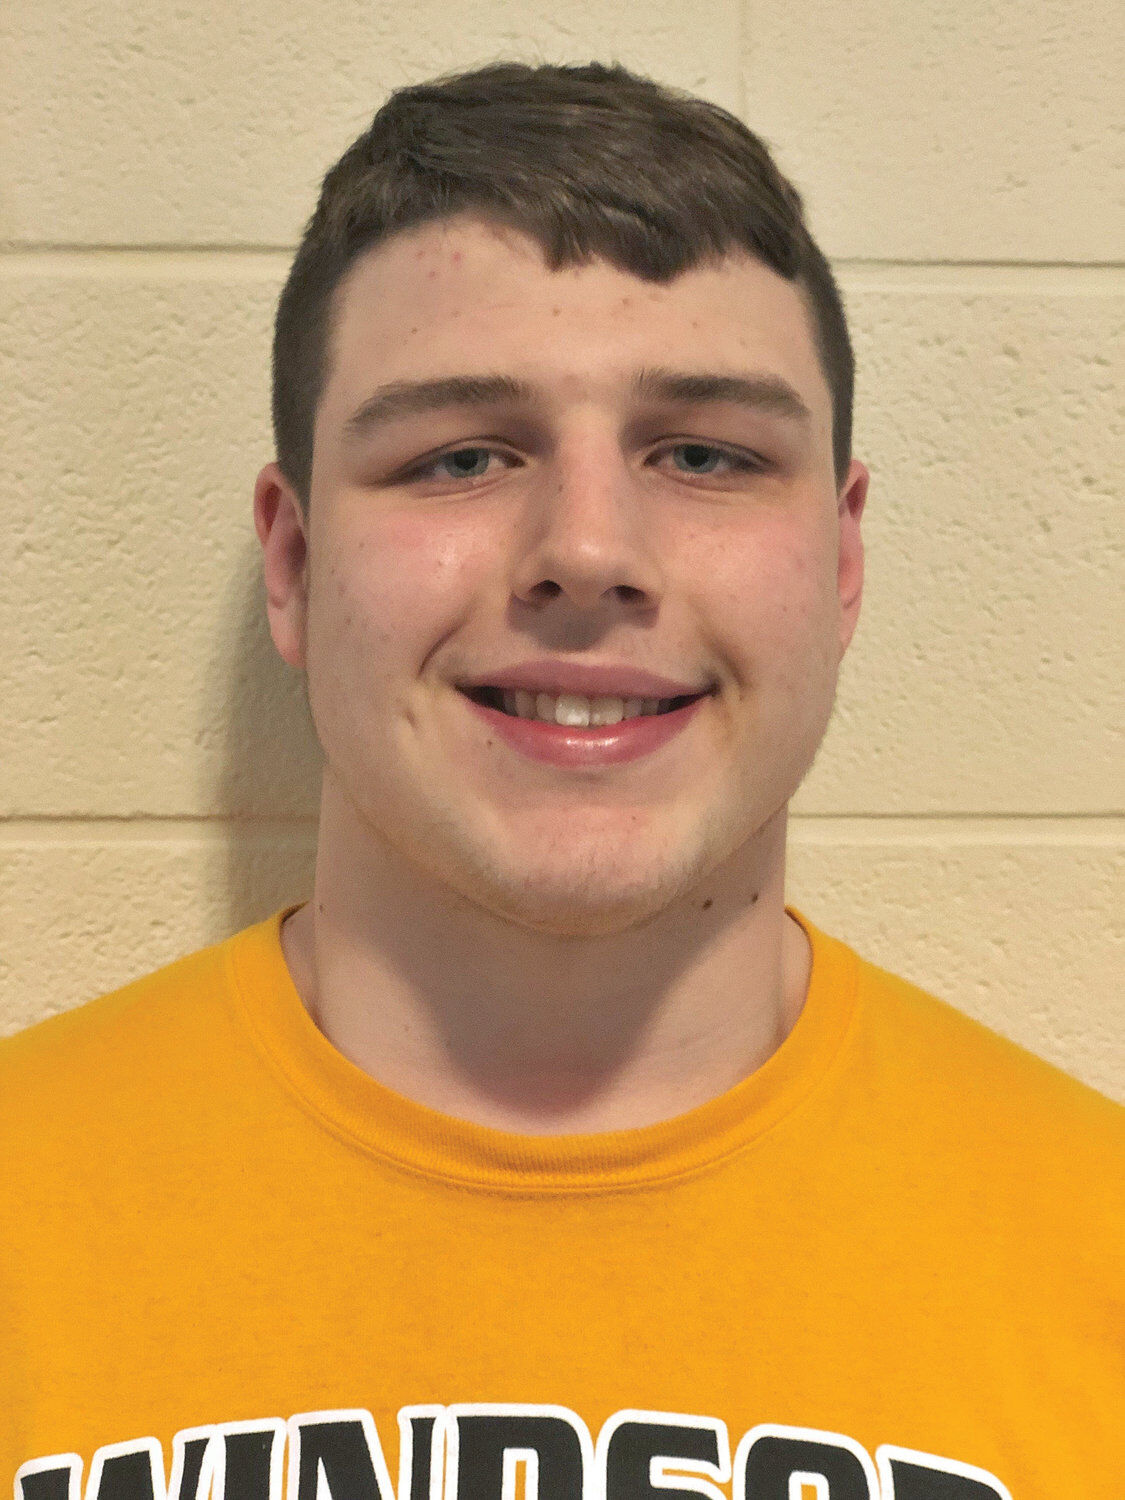 2019 Regional All-Stars Gala wrestling: Taylor, Sawyer, Coon named top athletes